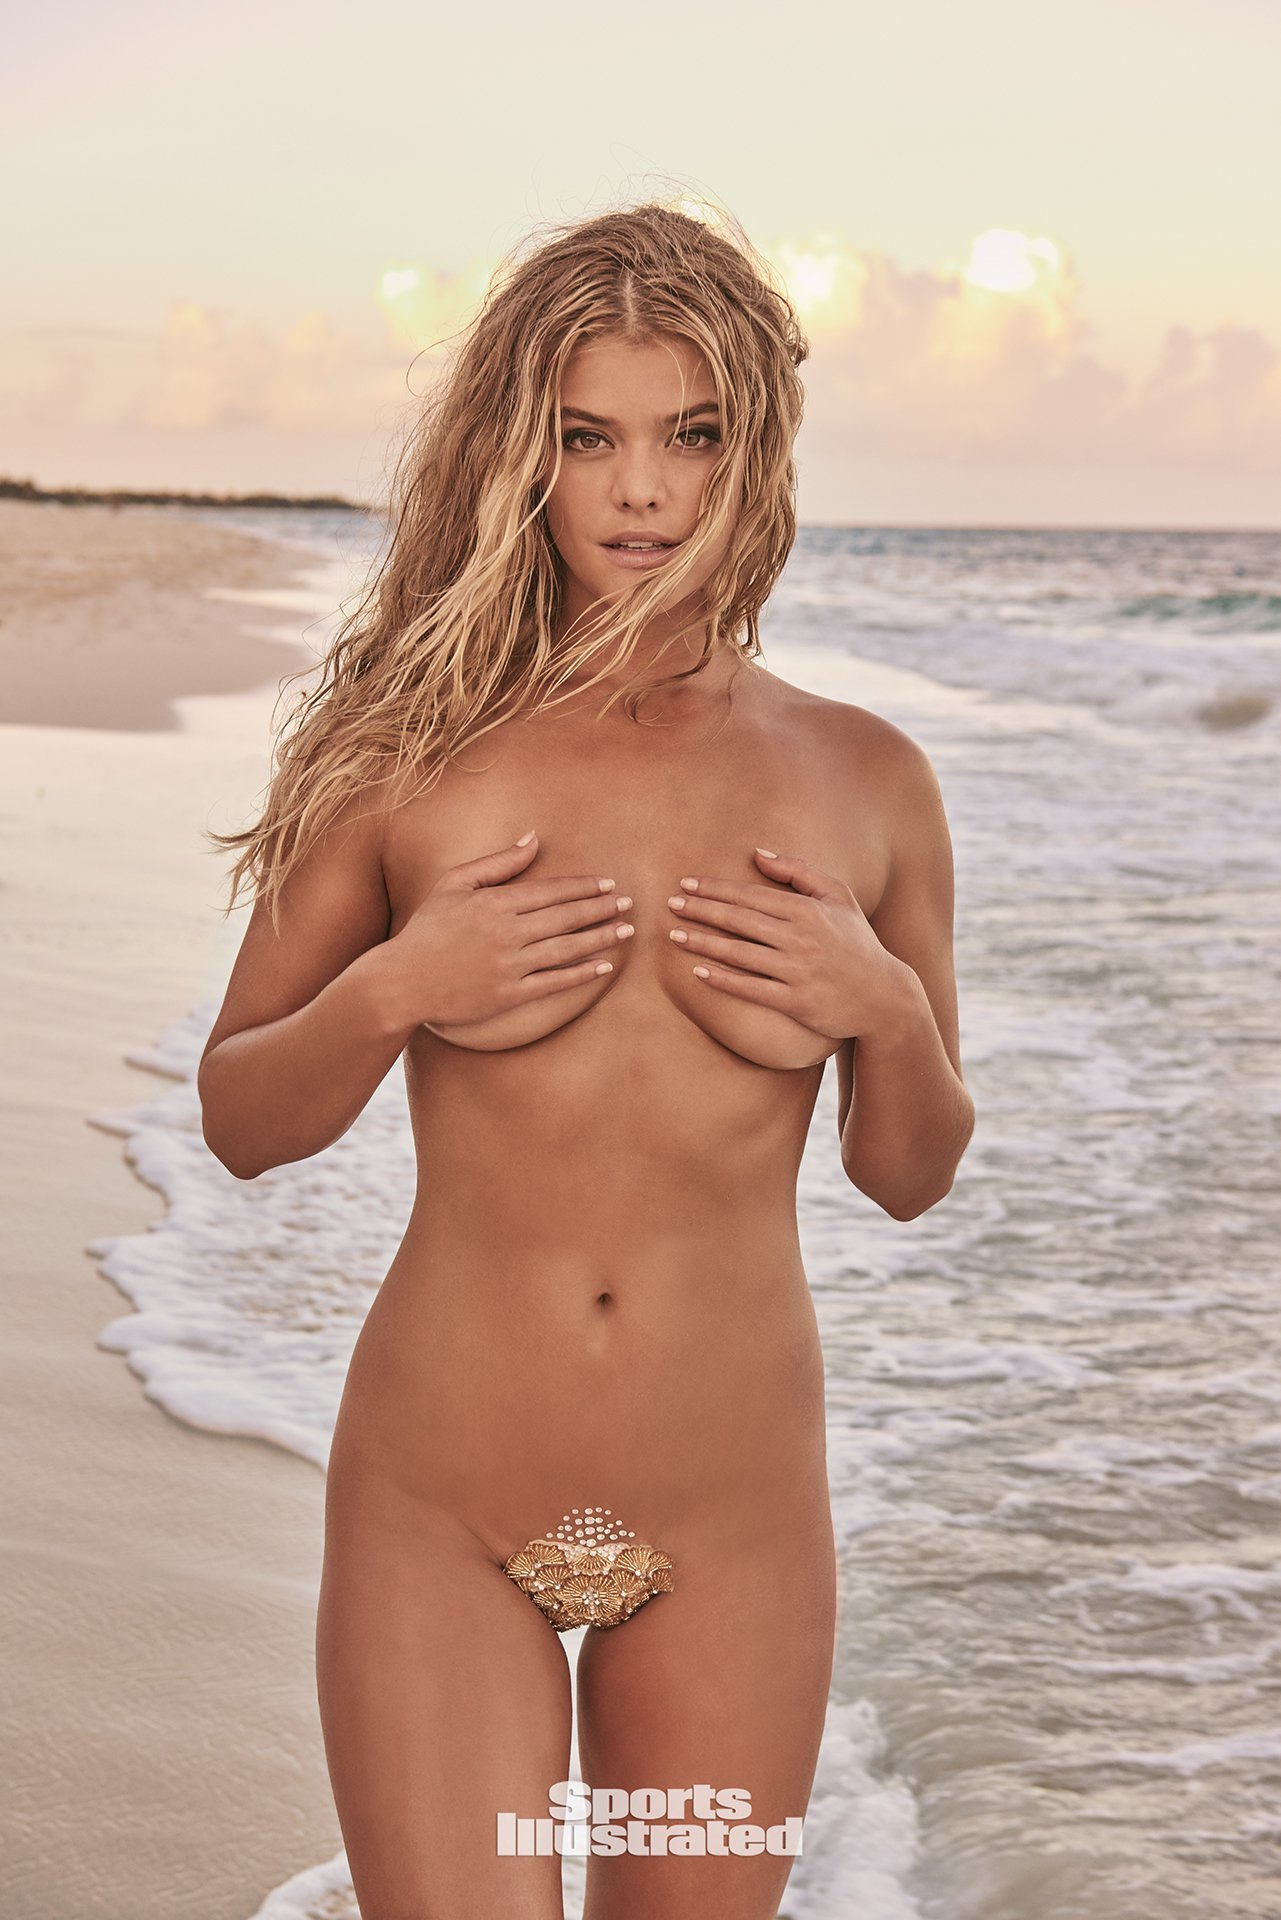 Sports illustrated girls naked opinion